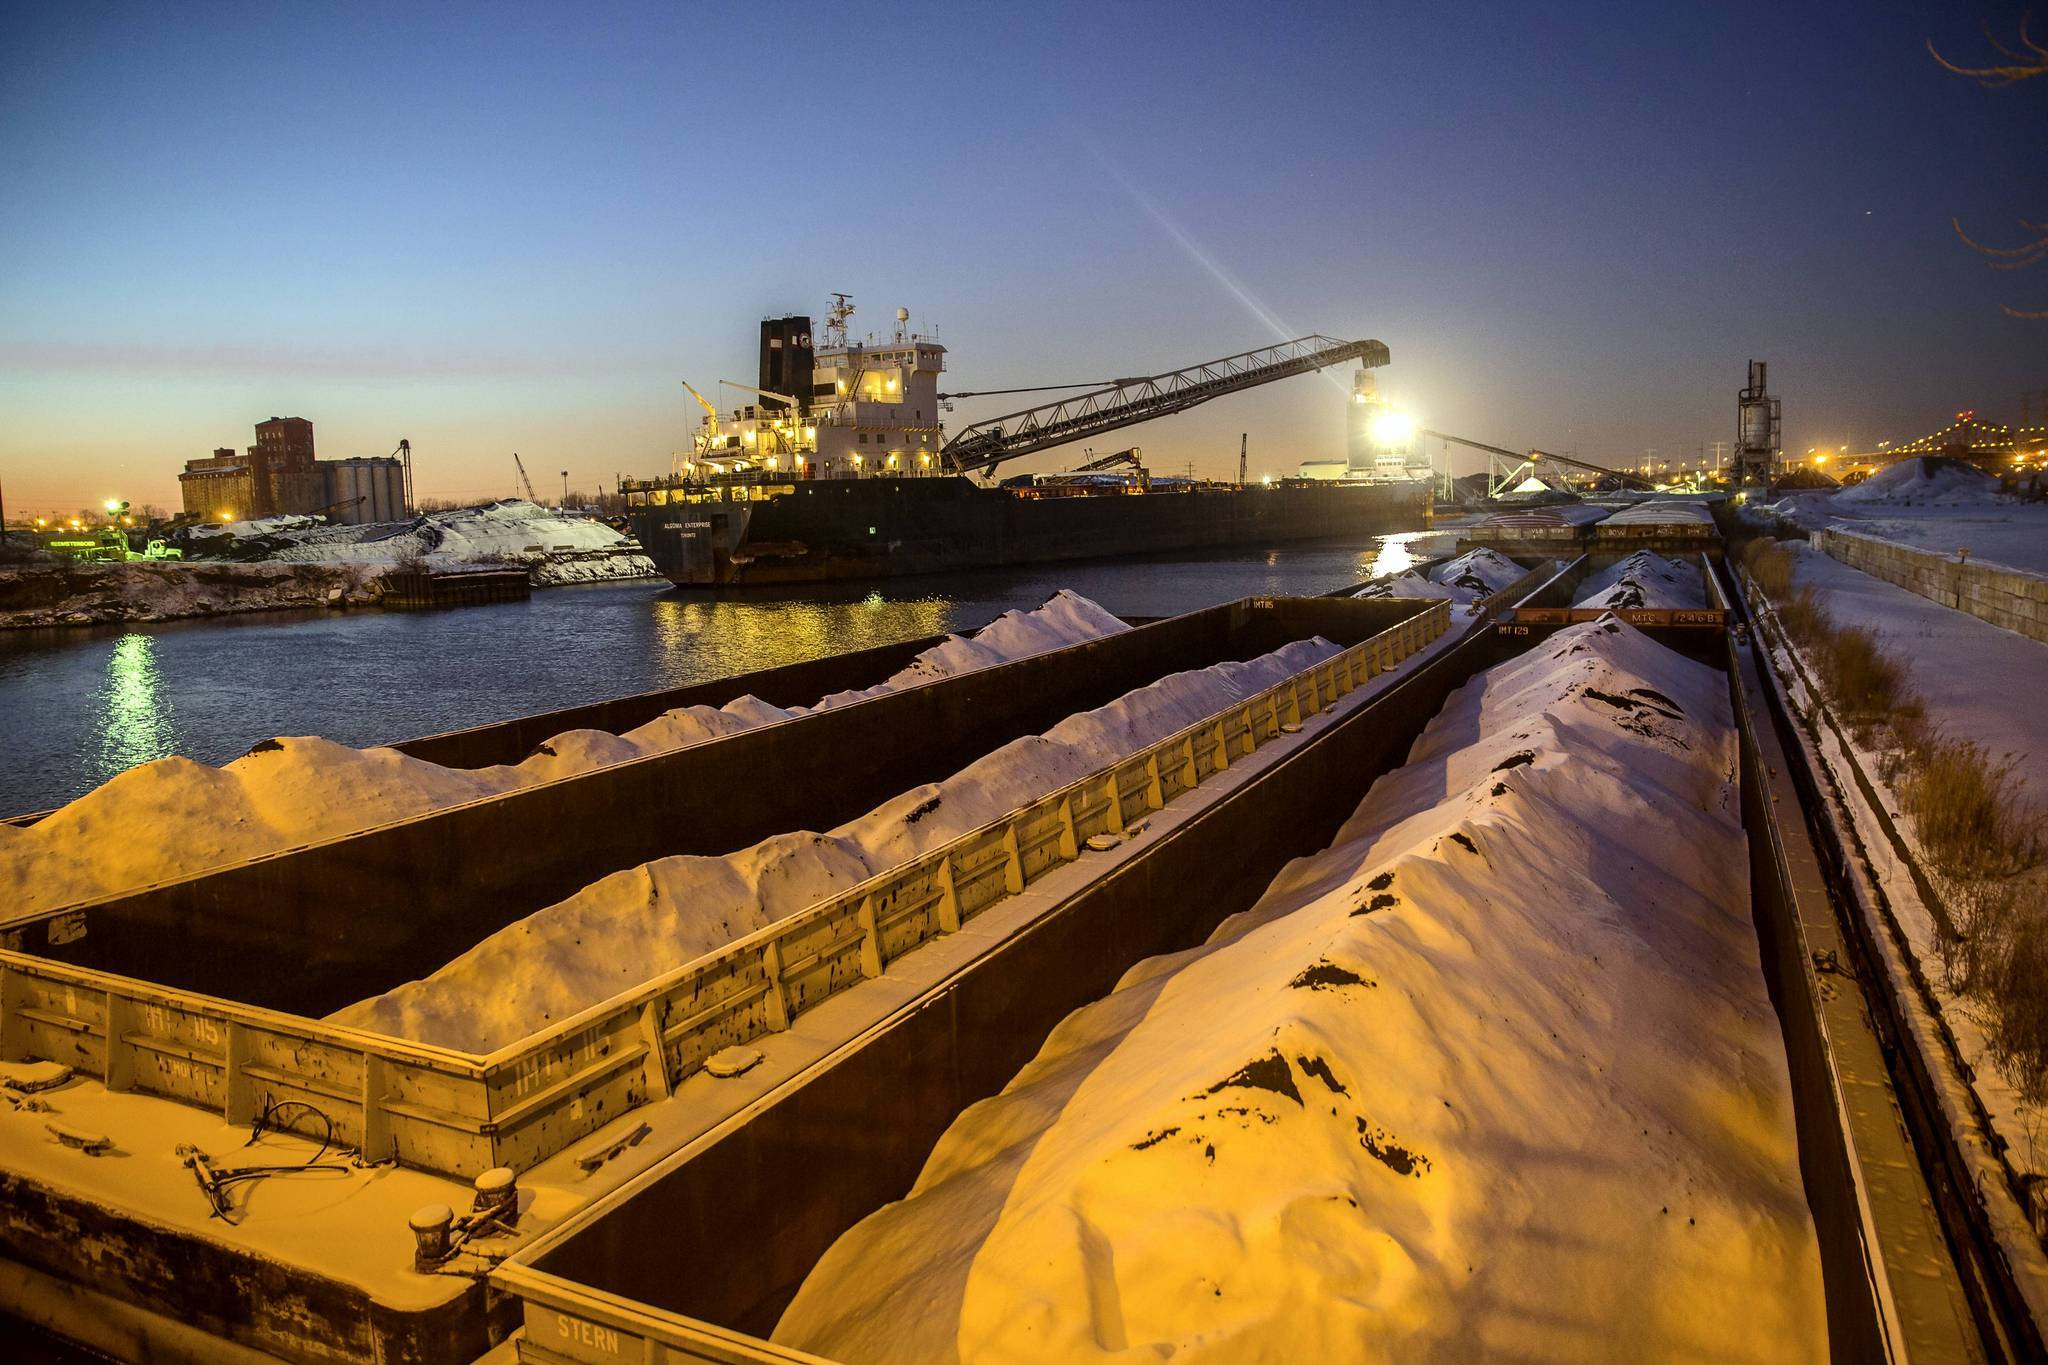 A cargo ship arrived at the docks of Beemsterboer Slag Company to load petcoke. Beemsterboer Slag Company has been storing dusty petcoke on the banks of the Calumet River at 106 Street.